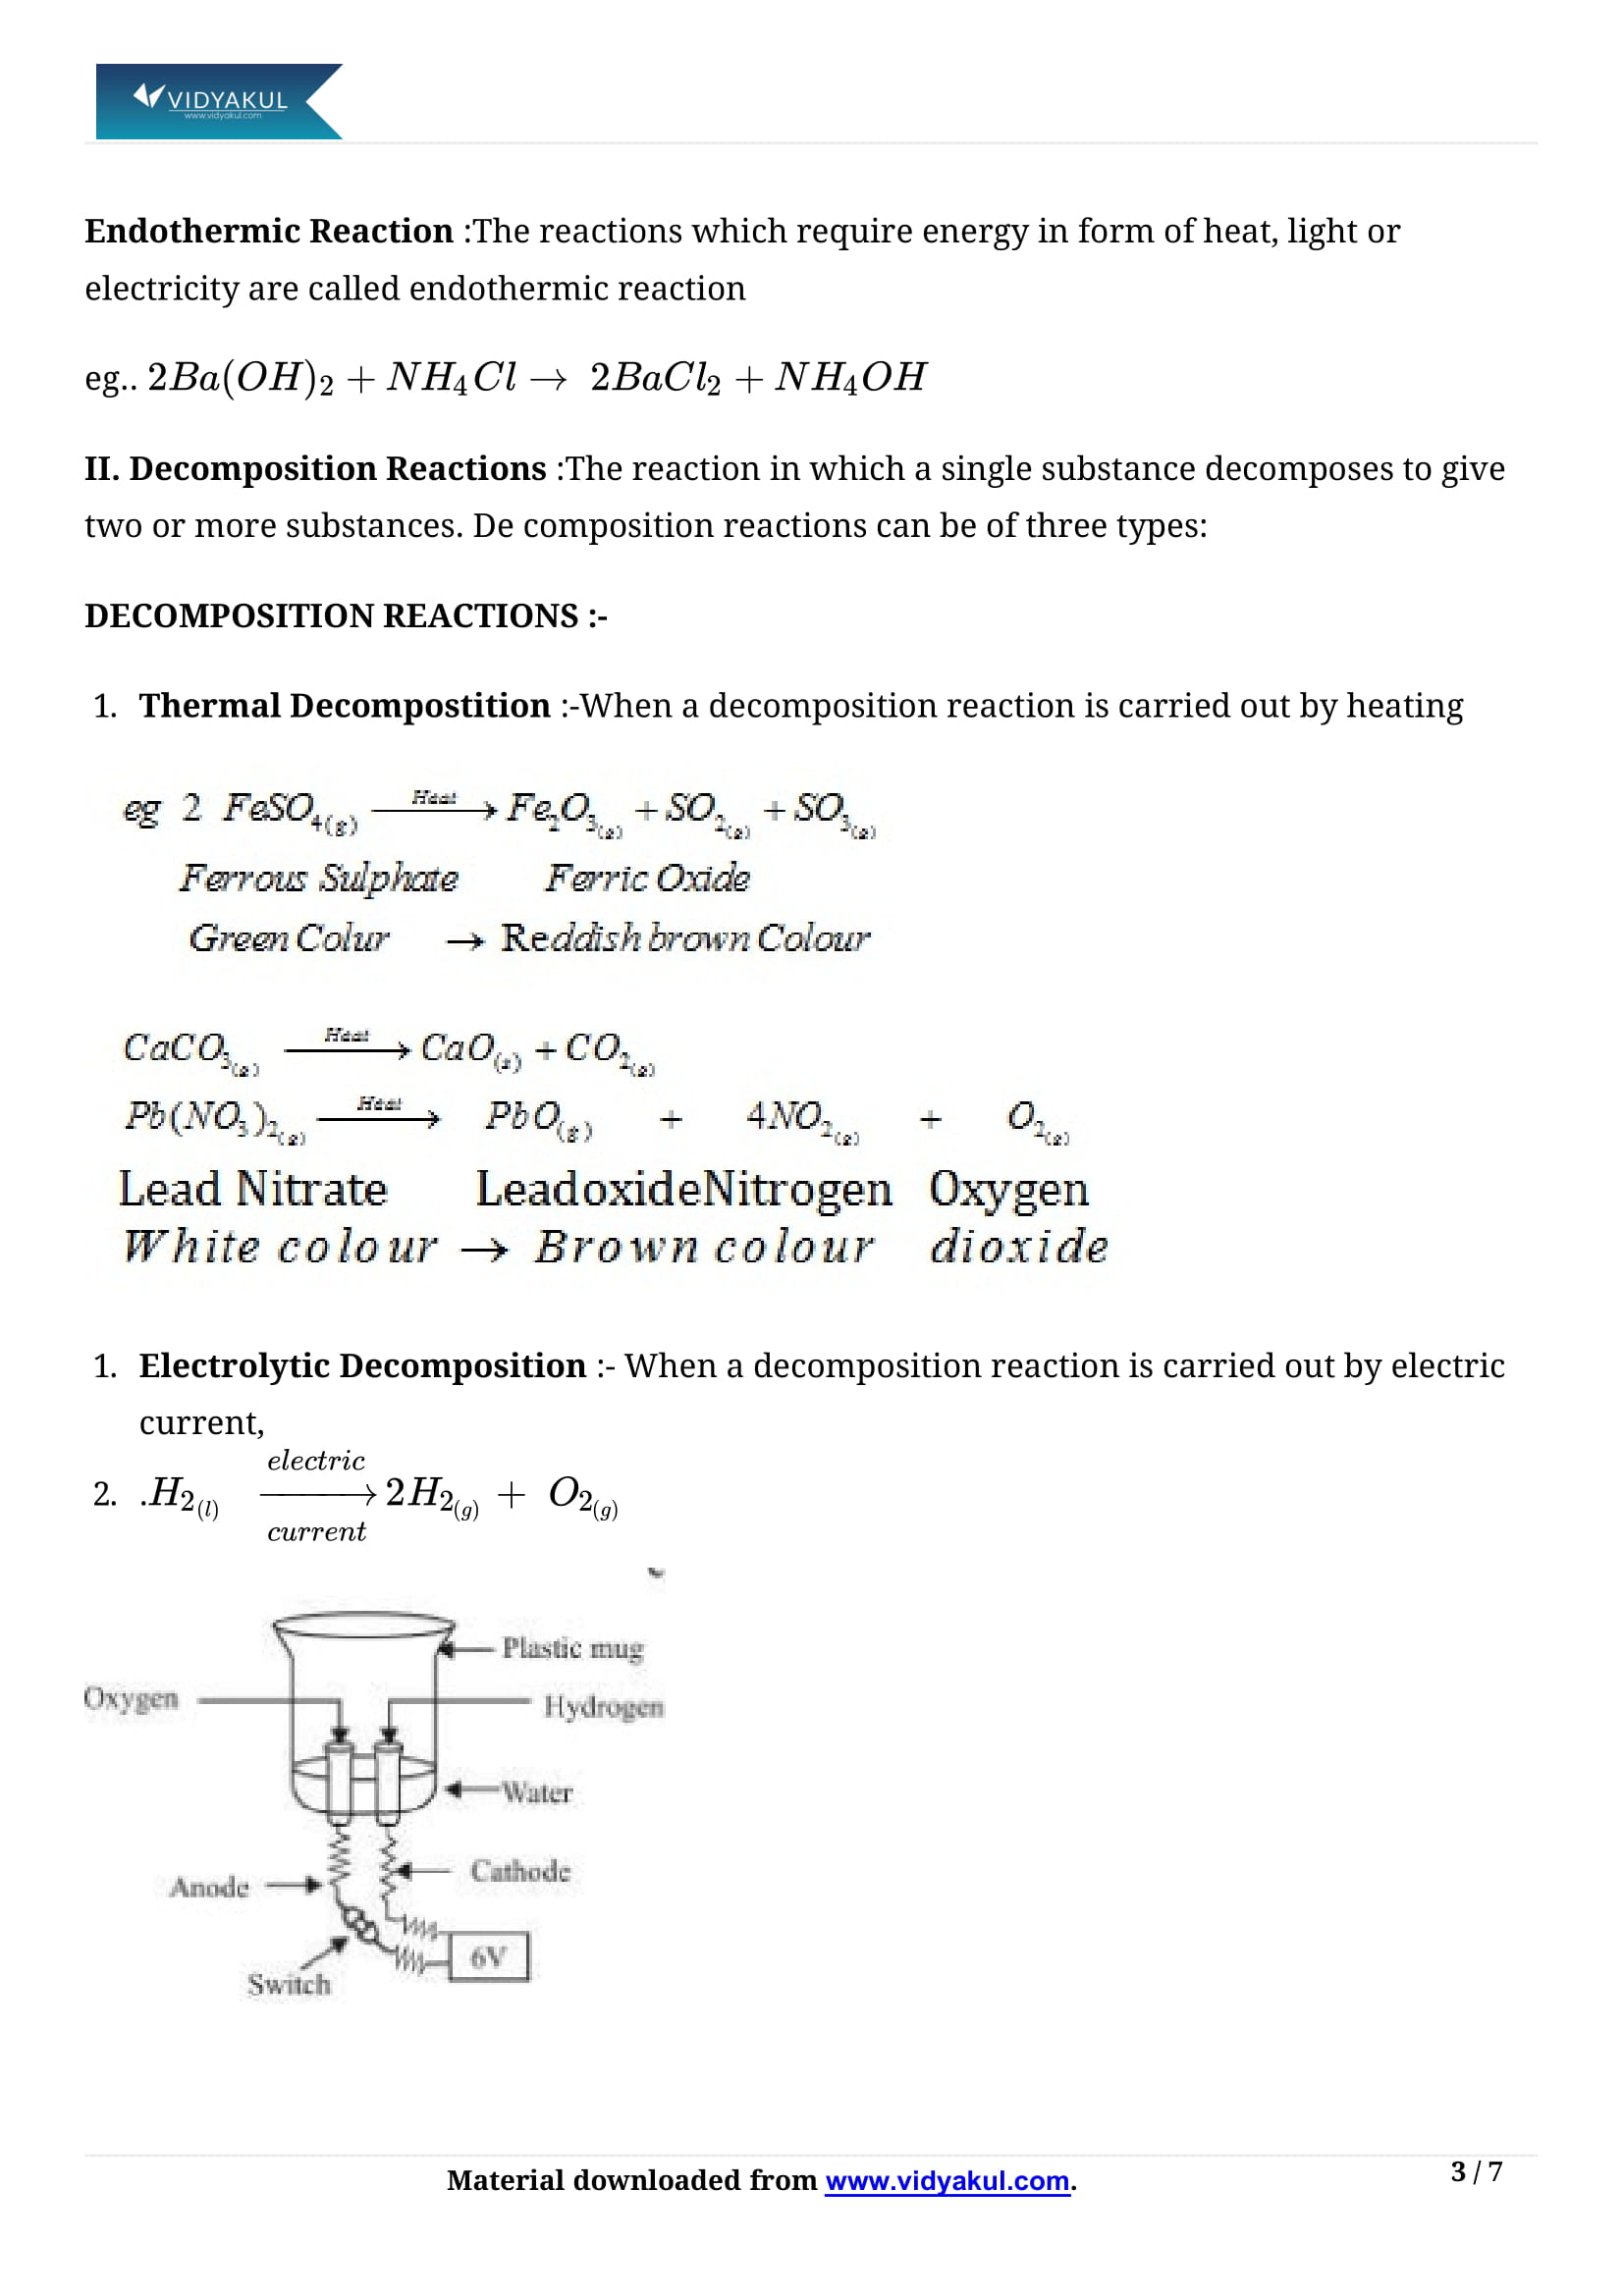 Chemical Reactions and Equations Class 10 Notes | Vidyakul